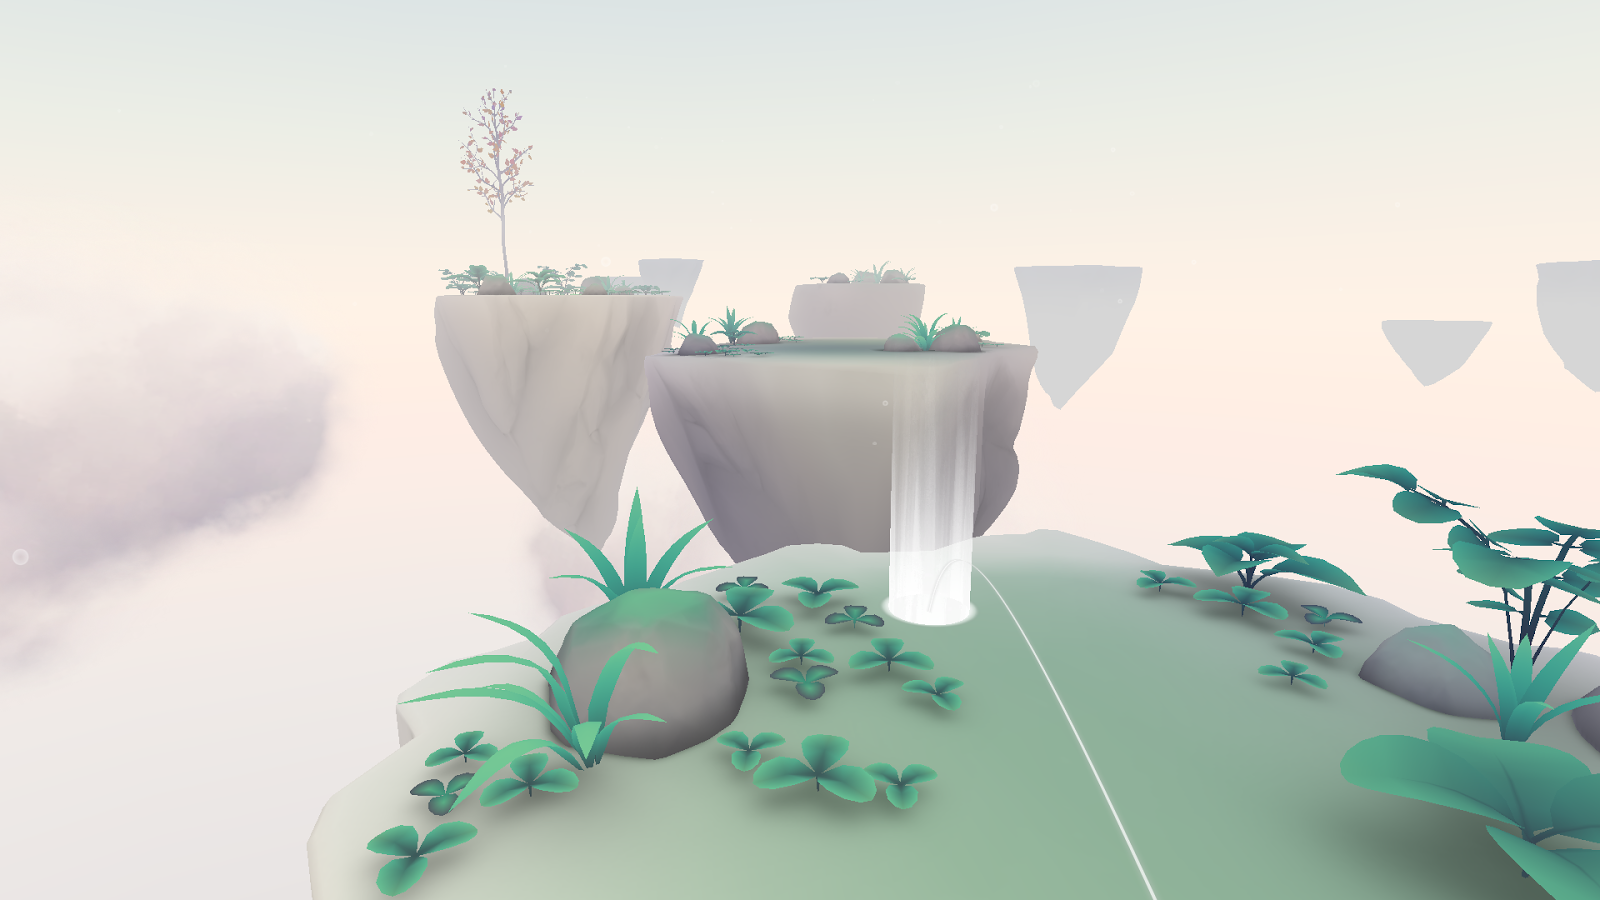 Google releases Daydream Elements, a new demo app for best VR practices